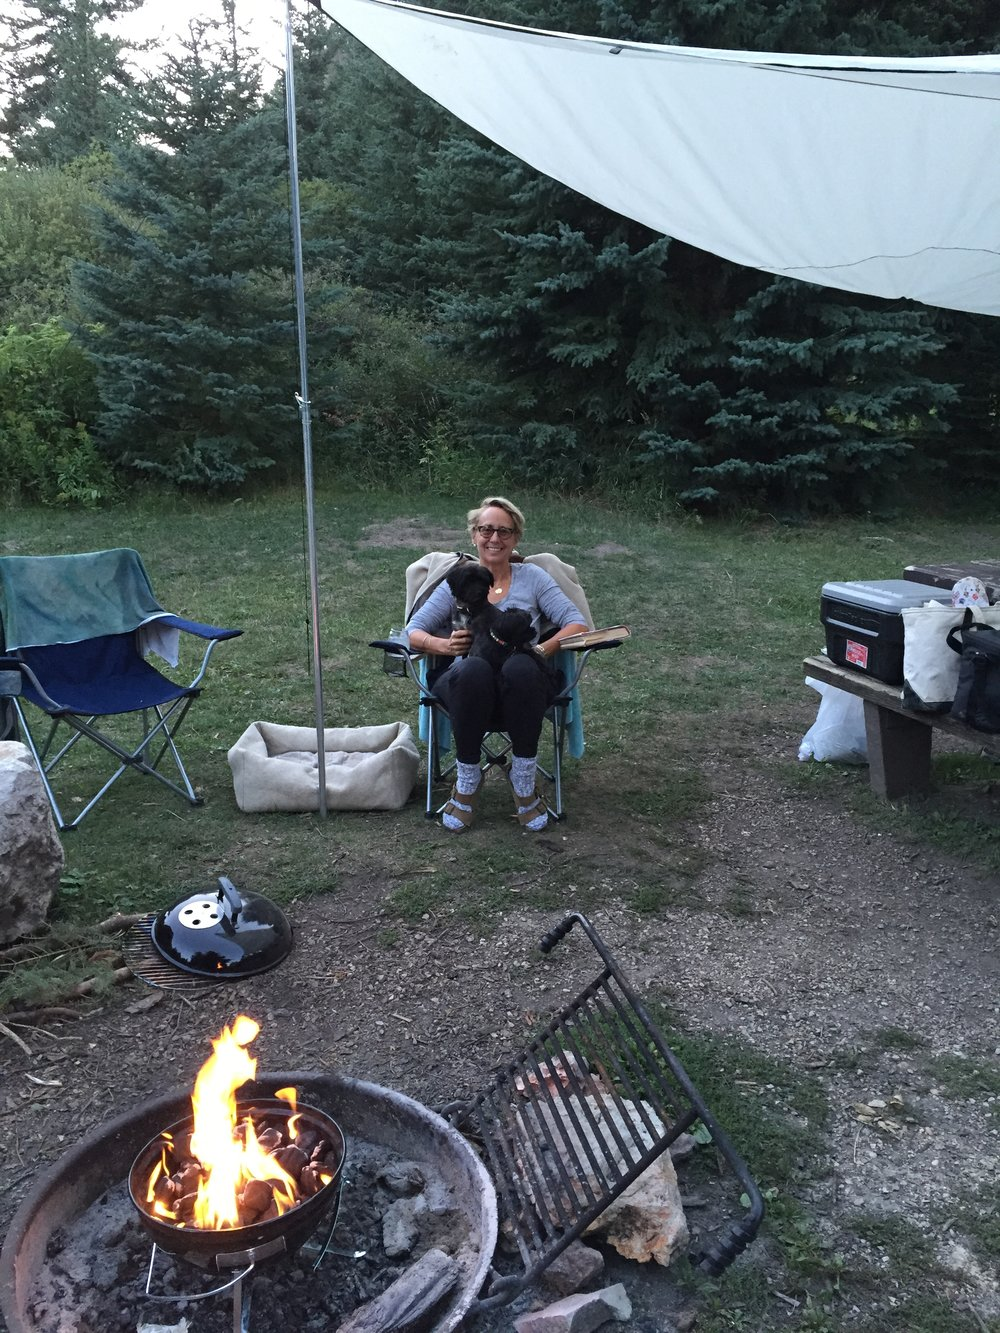 The Sizzle Sisters in South Dakota at the campfire